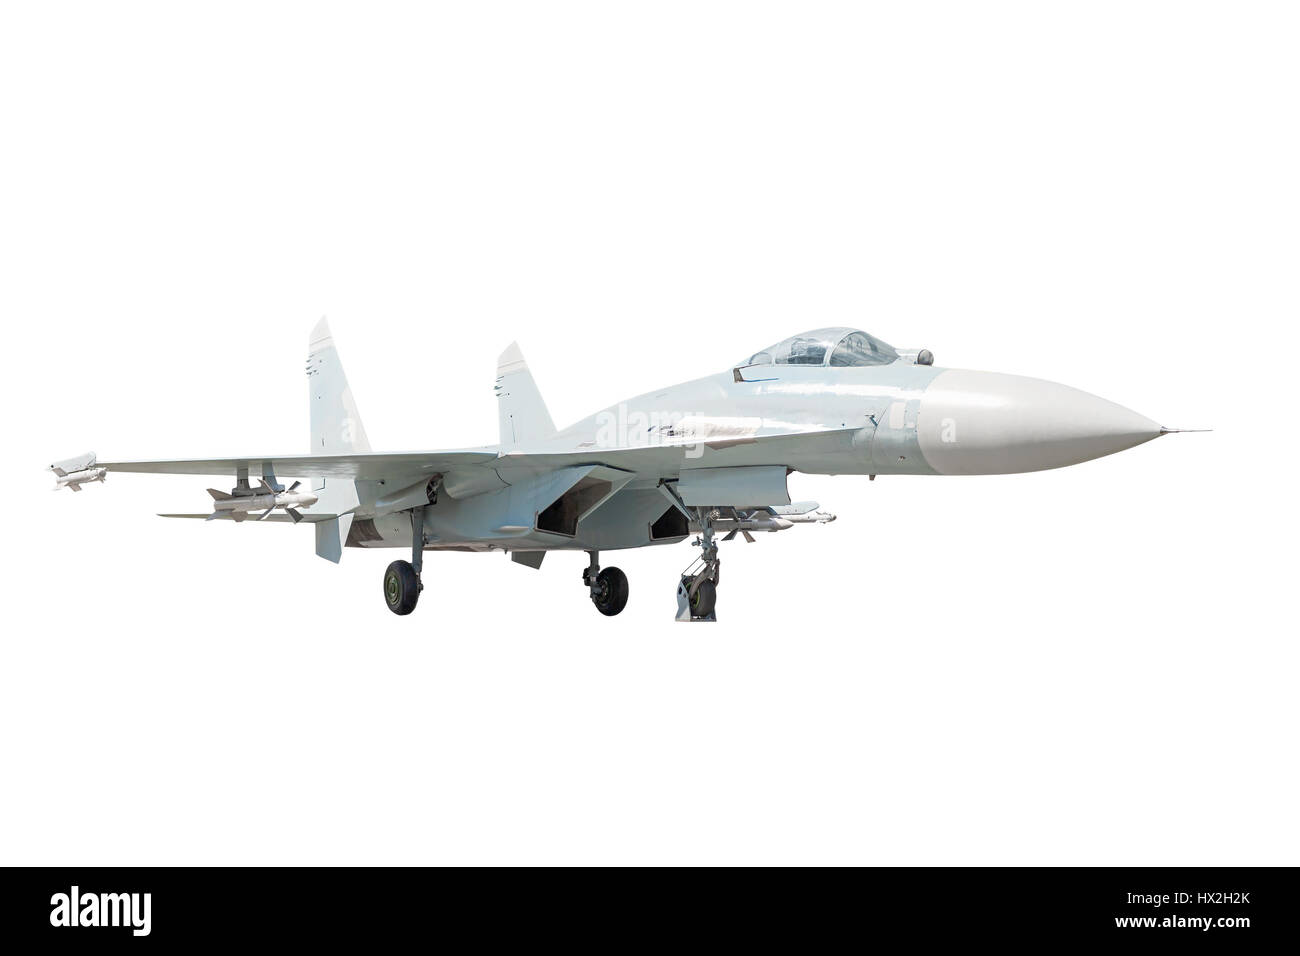 Side view of the supermaneuverable fighter aircraft on the white background - Stock Image